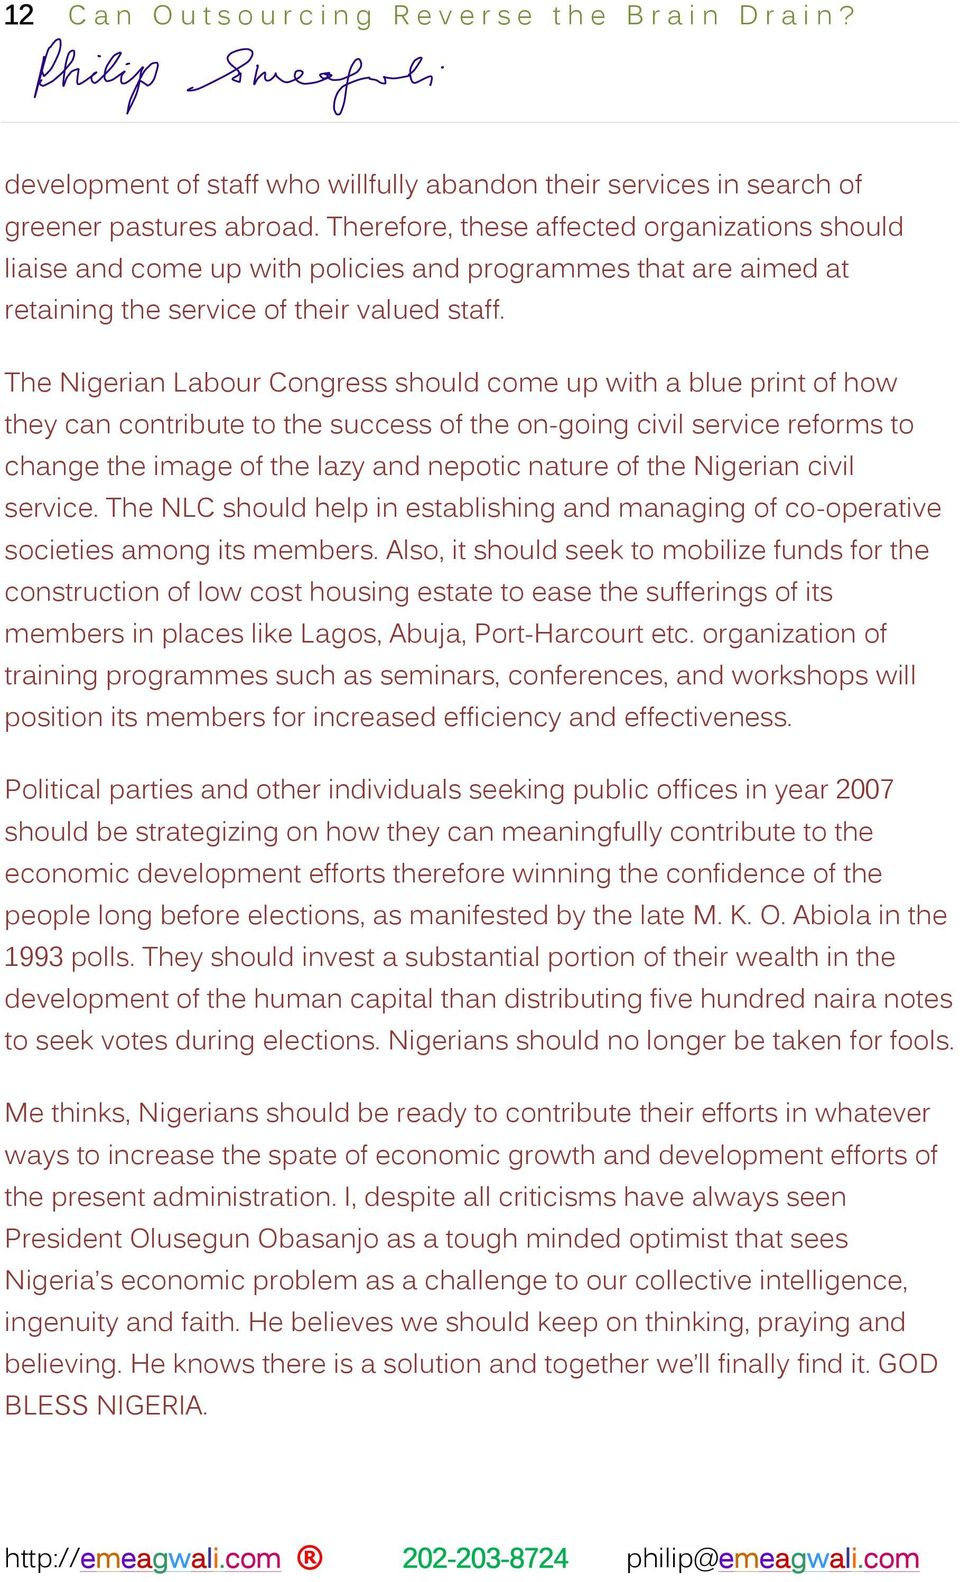 The Nigerian Labour Congress should come up with a blue print of how they can contribute to the success of the on-going civil service reforms to change the image of the lazy and nepotic nature of the